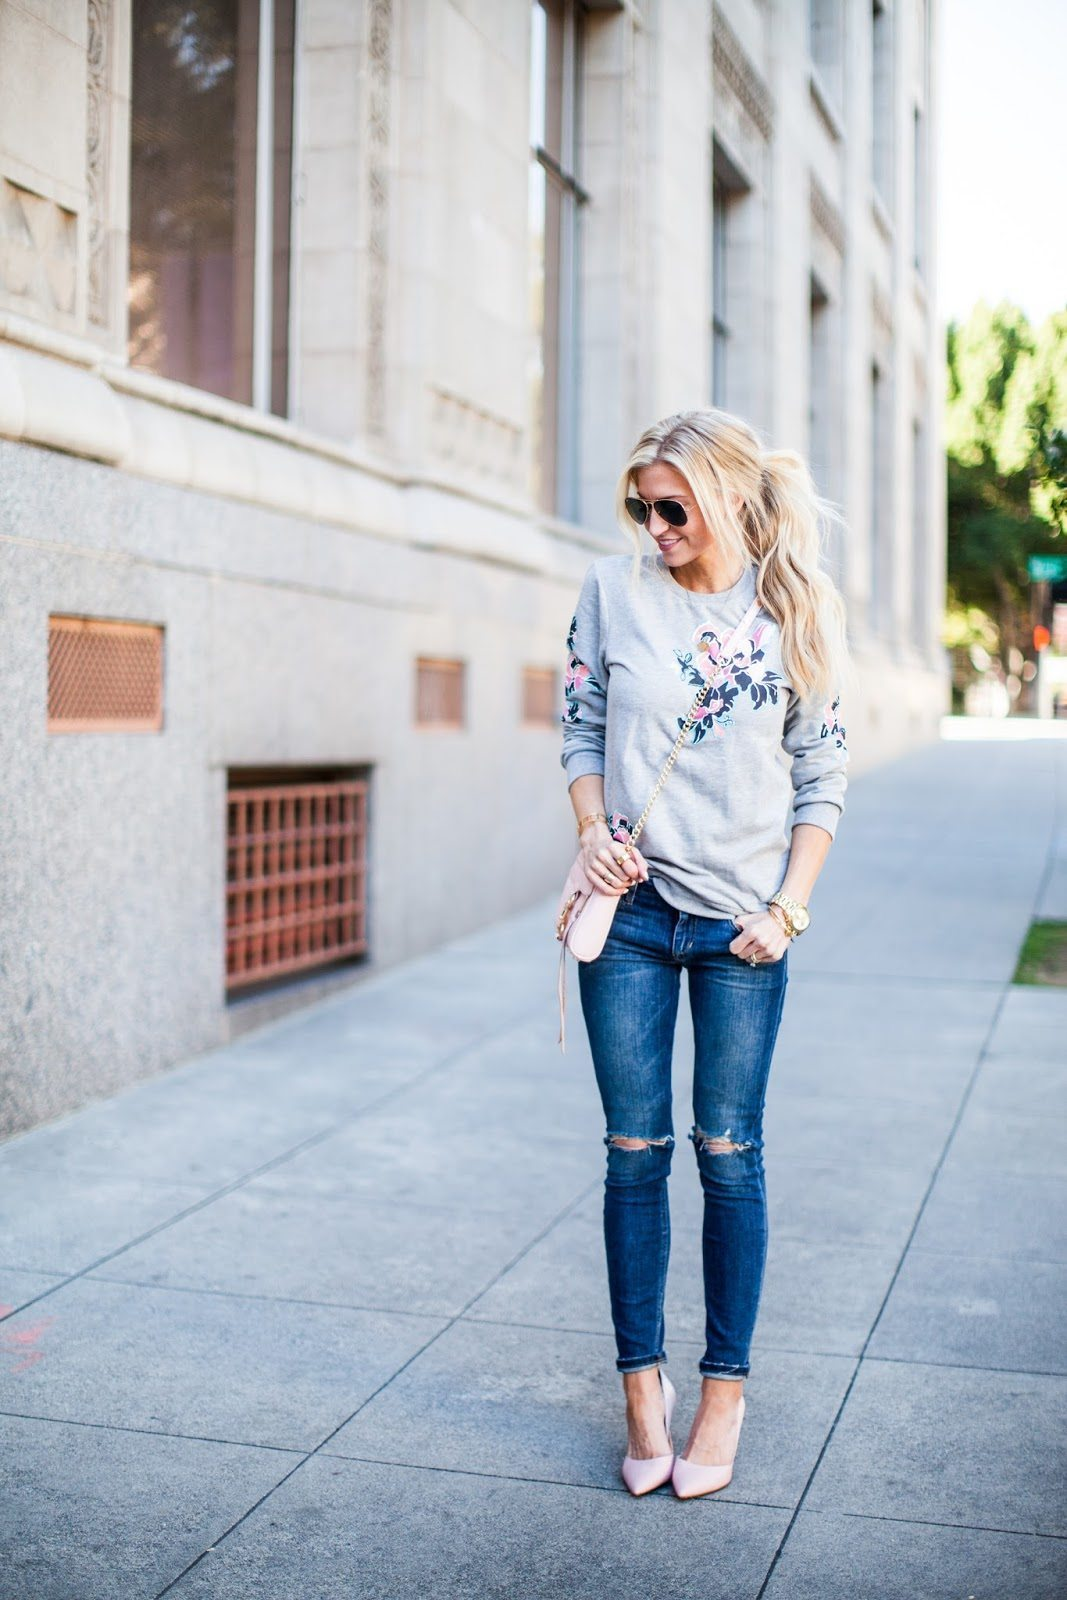 3 TIPS ON HOW TO DRESS FOR A CASUAL VALENTINES DATE NIGHT